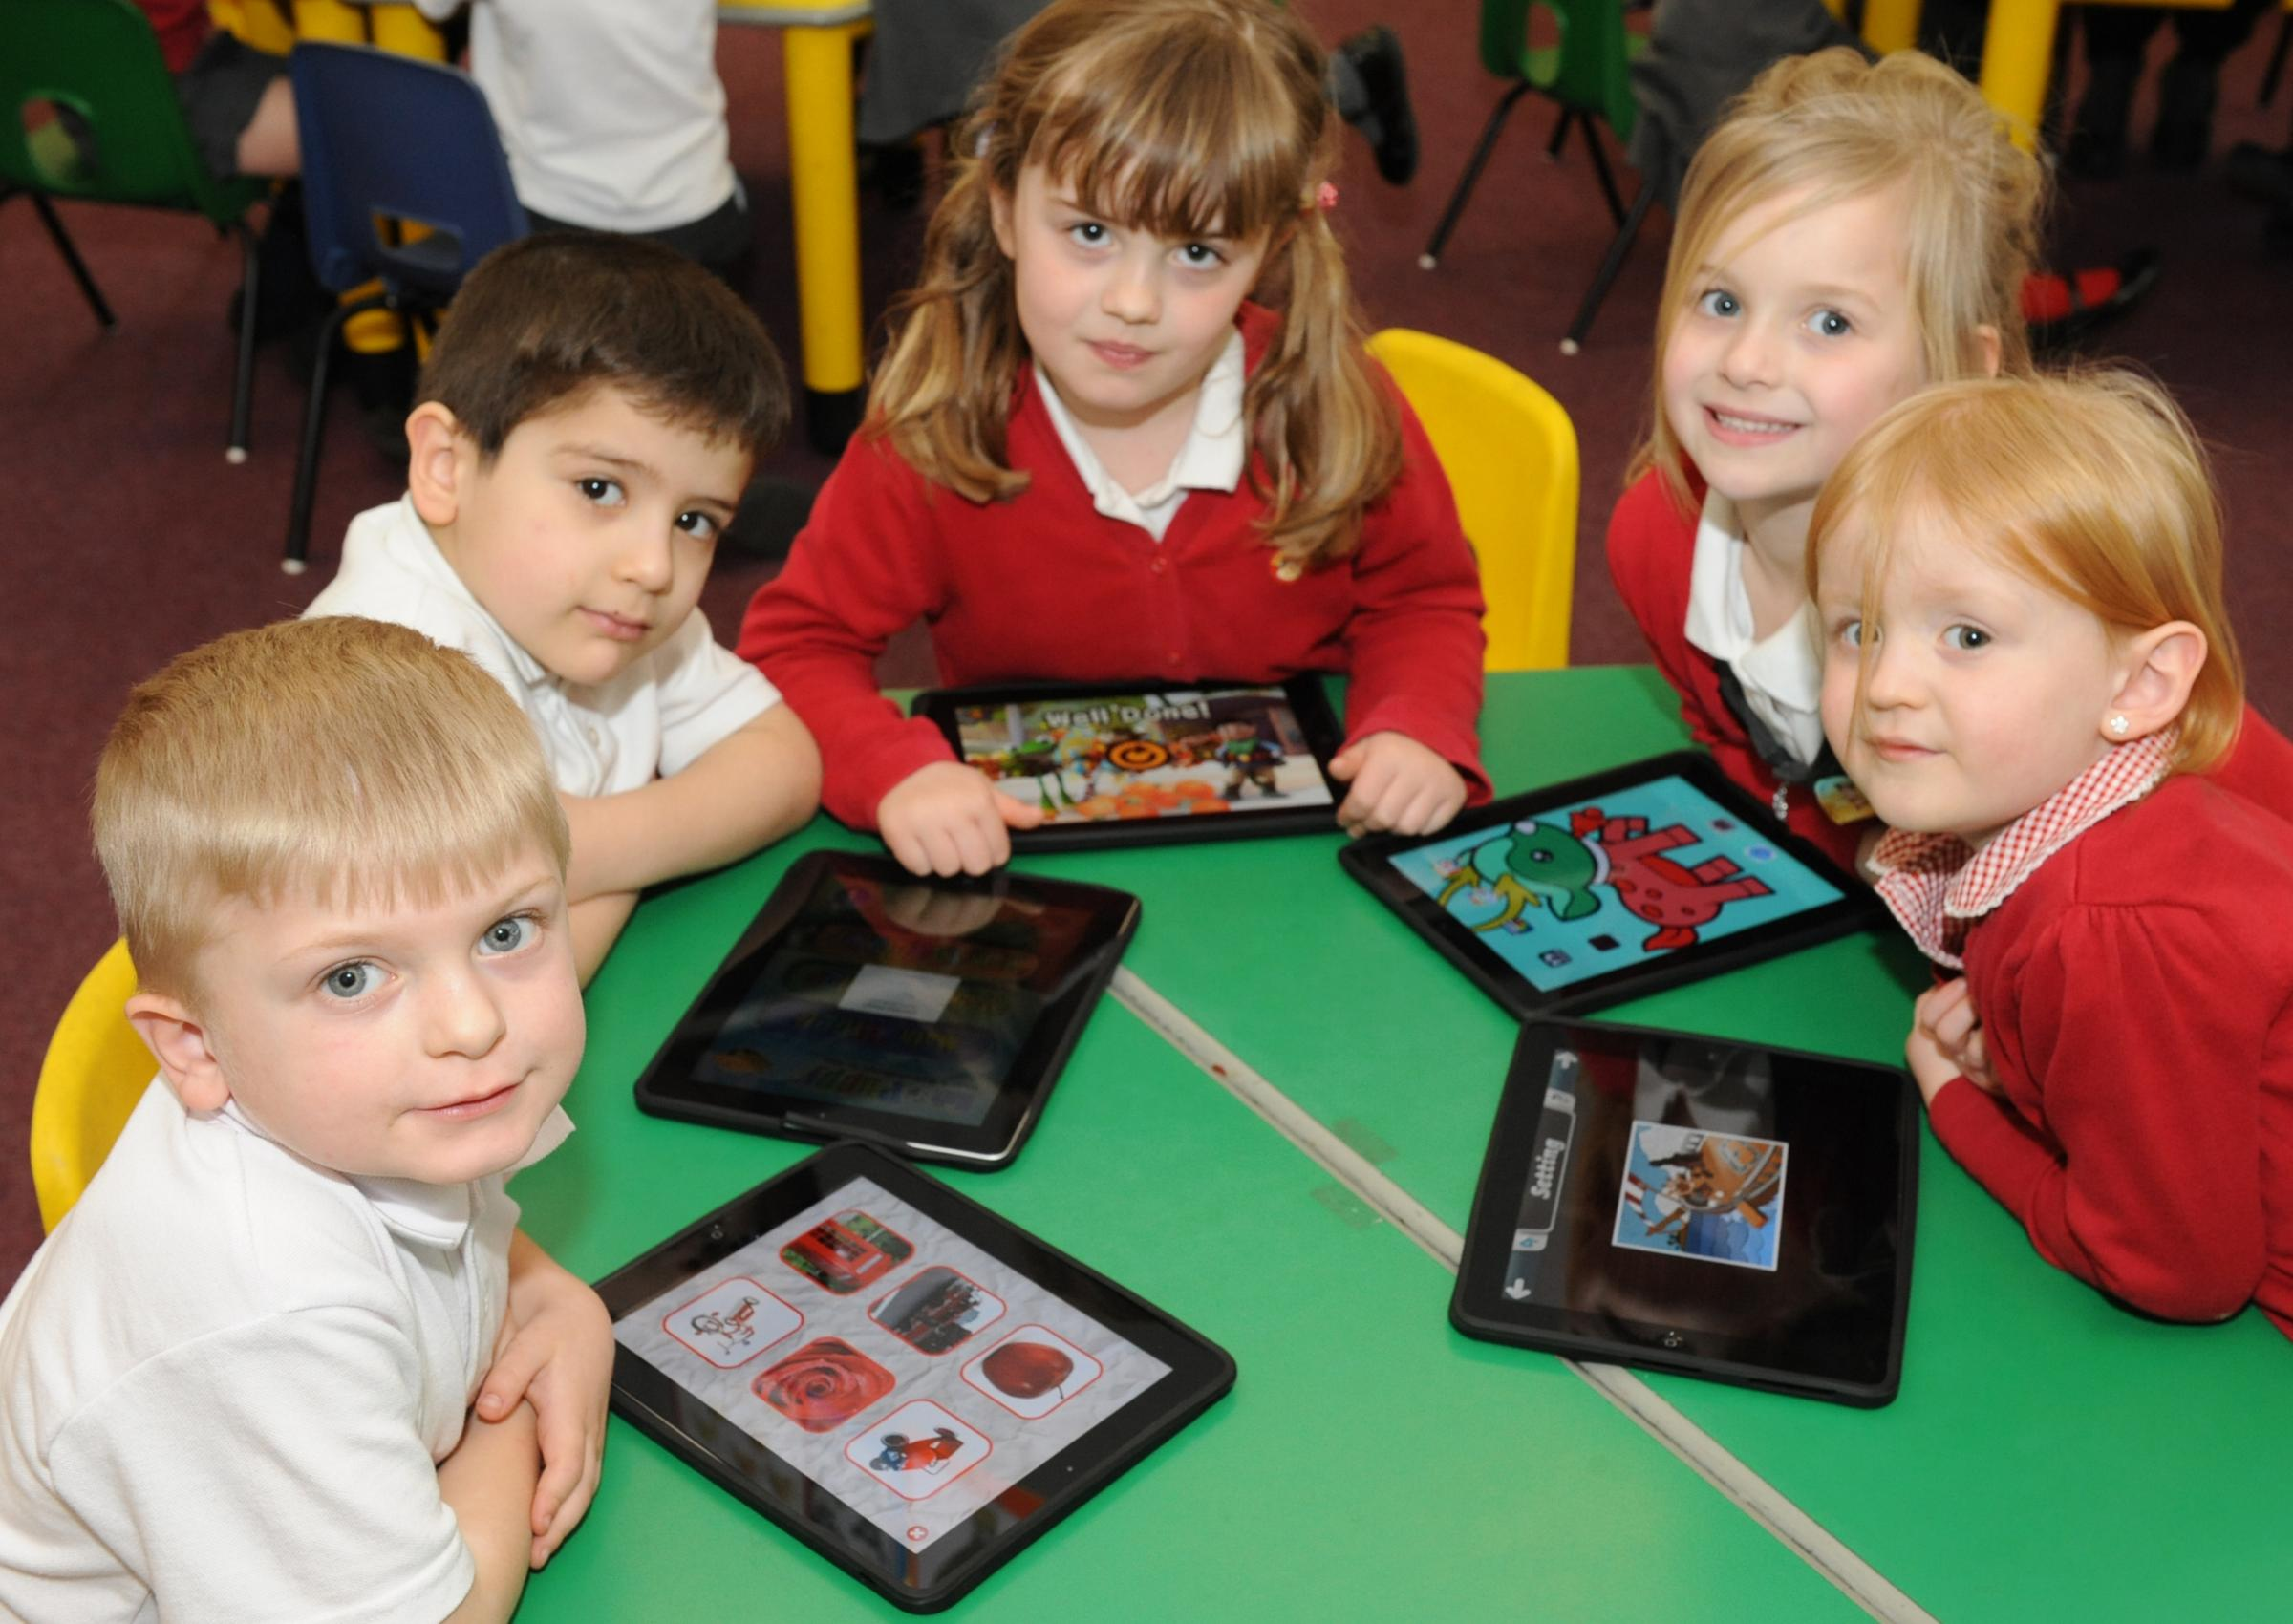 Tablet children – Oliver Wooton, Emirhan Kaygisiz, Bethany Gangs, Amelia Smithers and Evie Rae Grinstead-Miller from North Crescent Primary School, Wickford